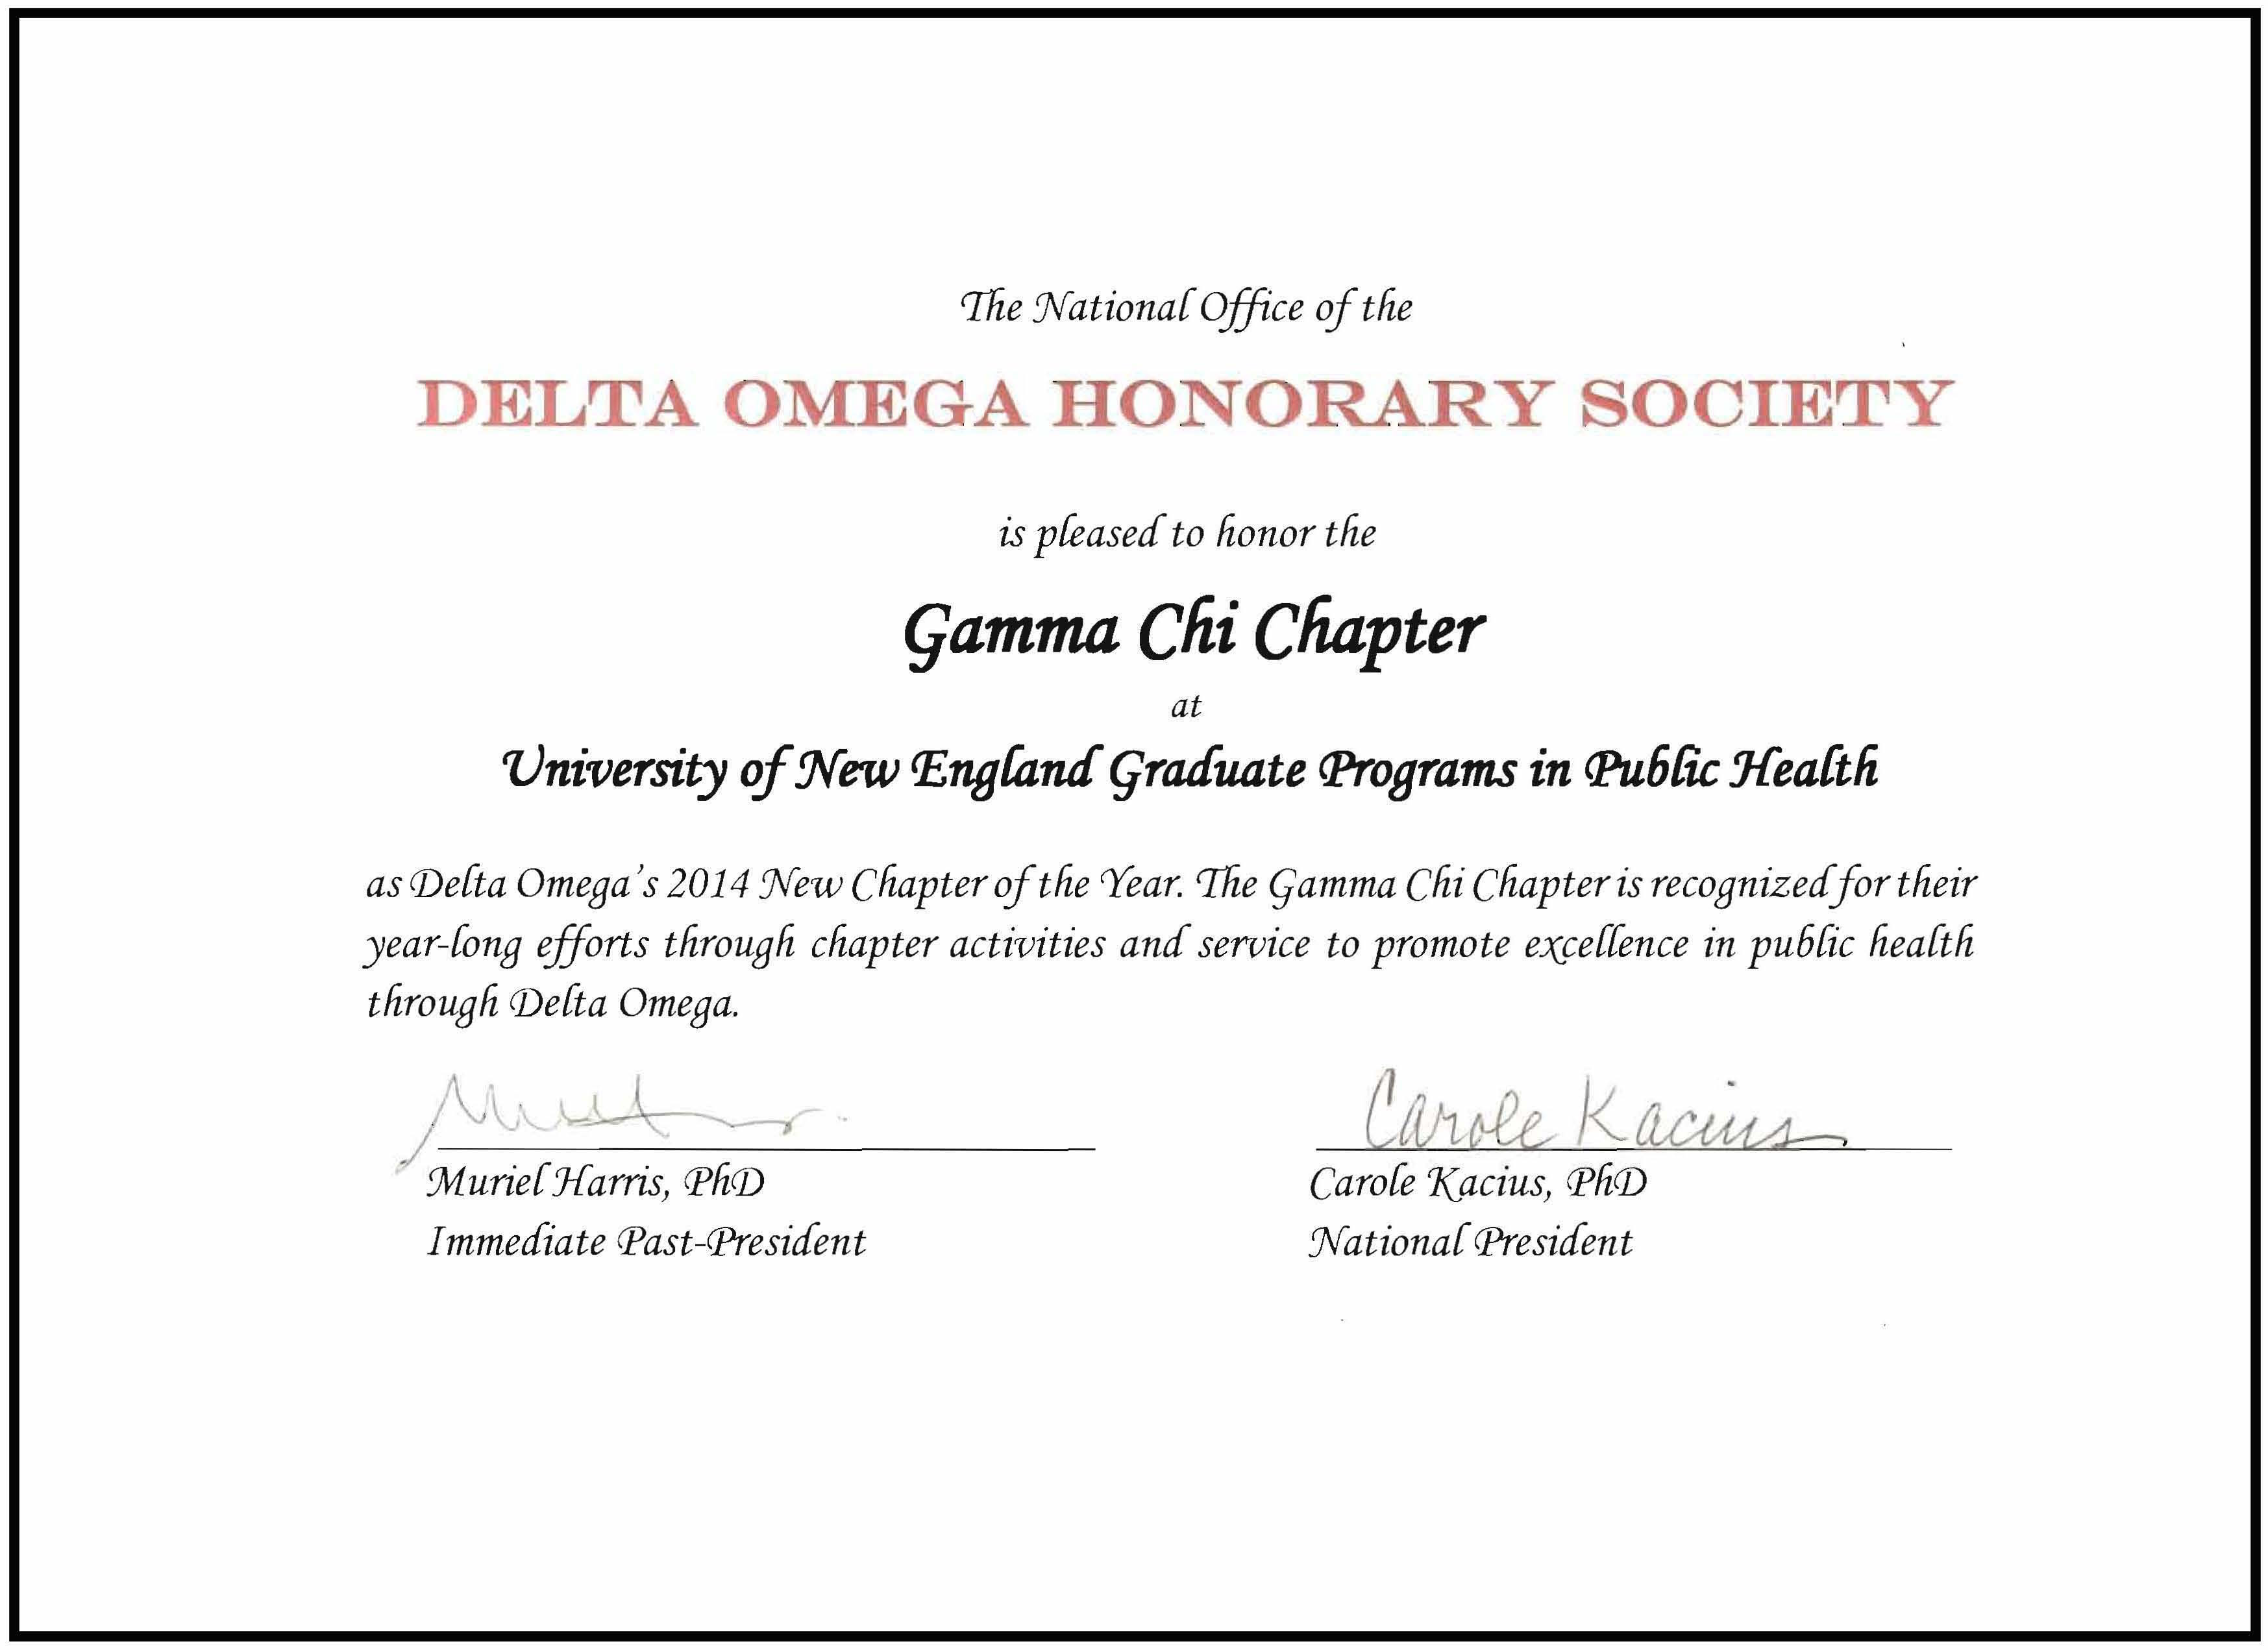 Delta Omega Honorary Society In Public Health Une Online Une